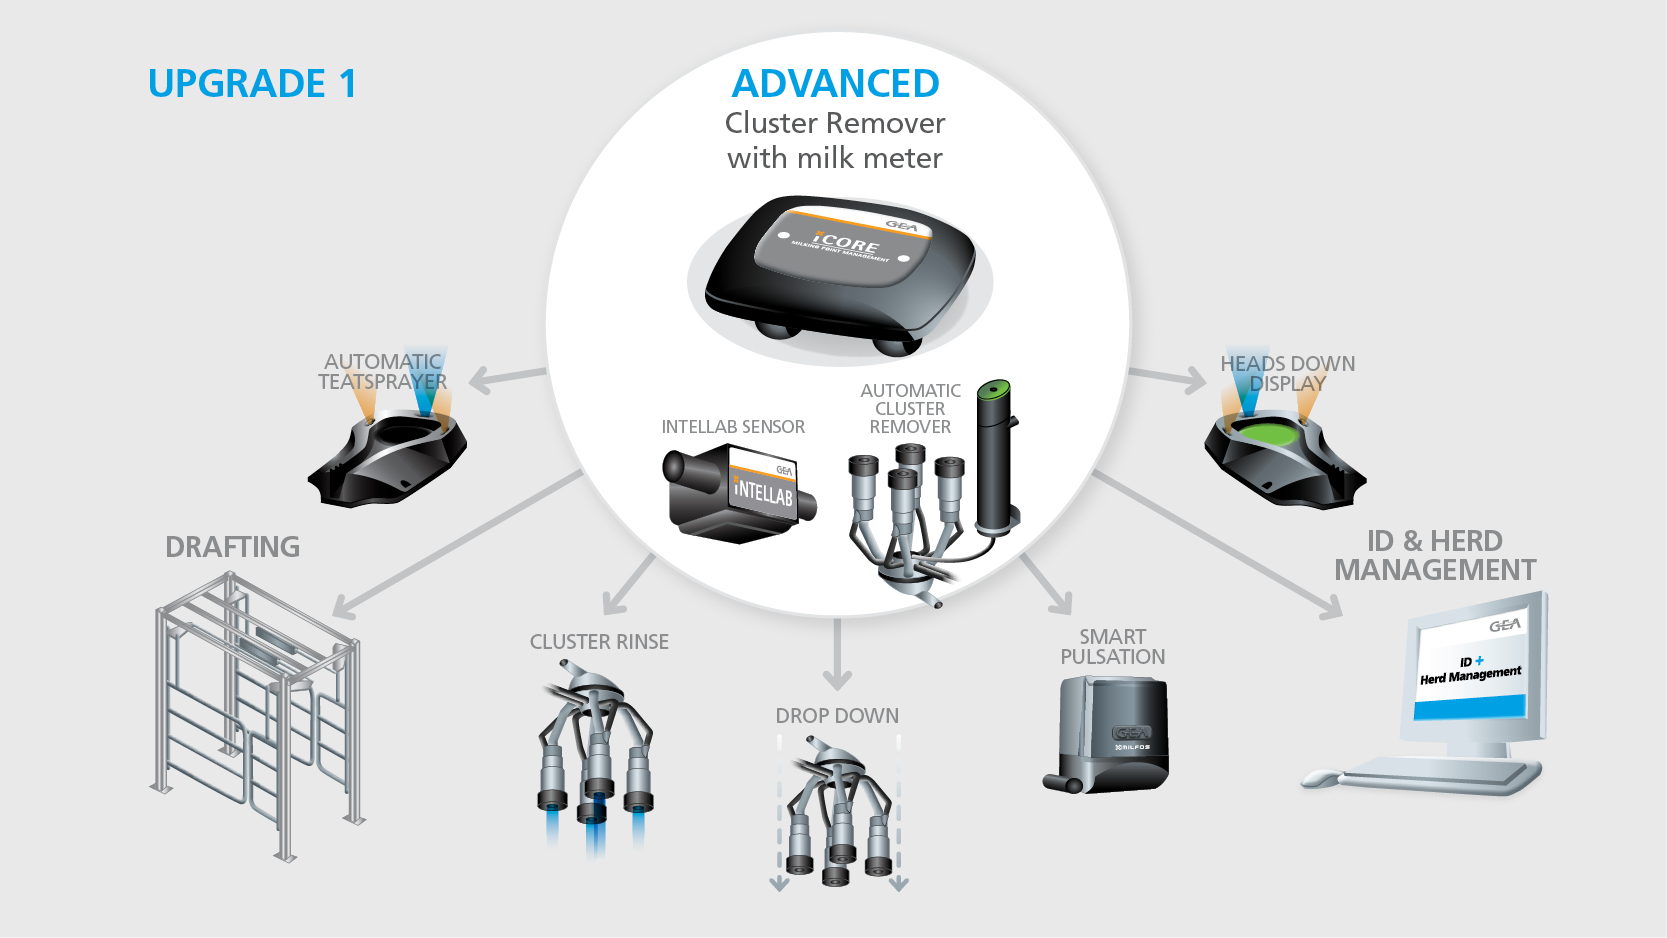 iCore milking point controller advanced intellab